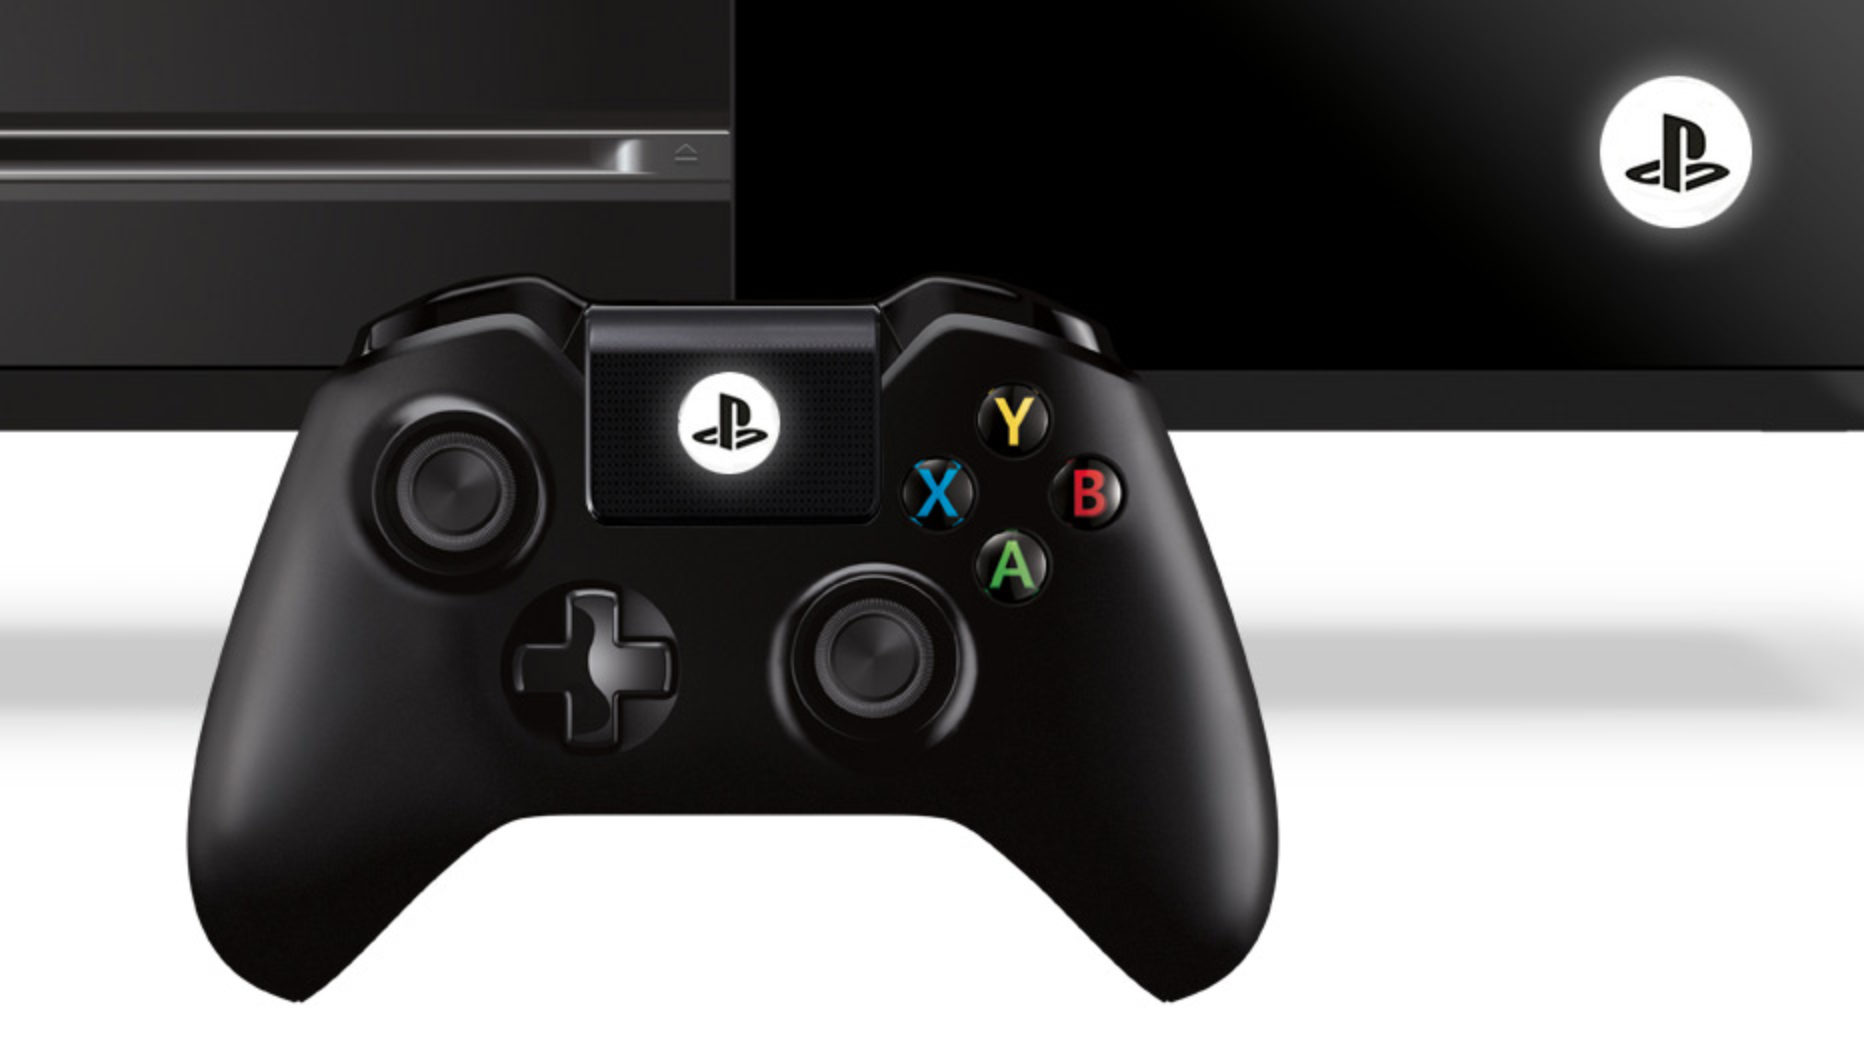 7 Features The Xbox One Needs To Steal From The PS4